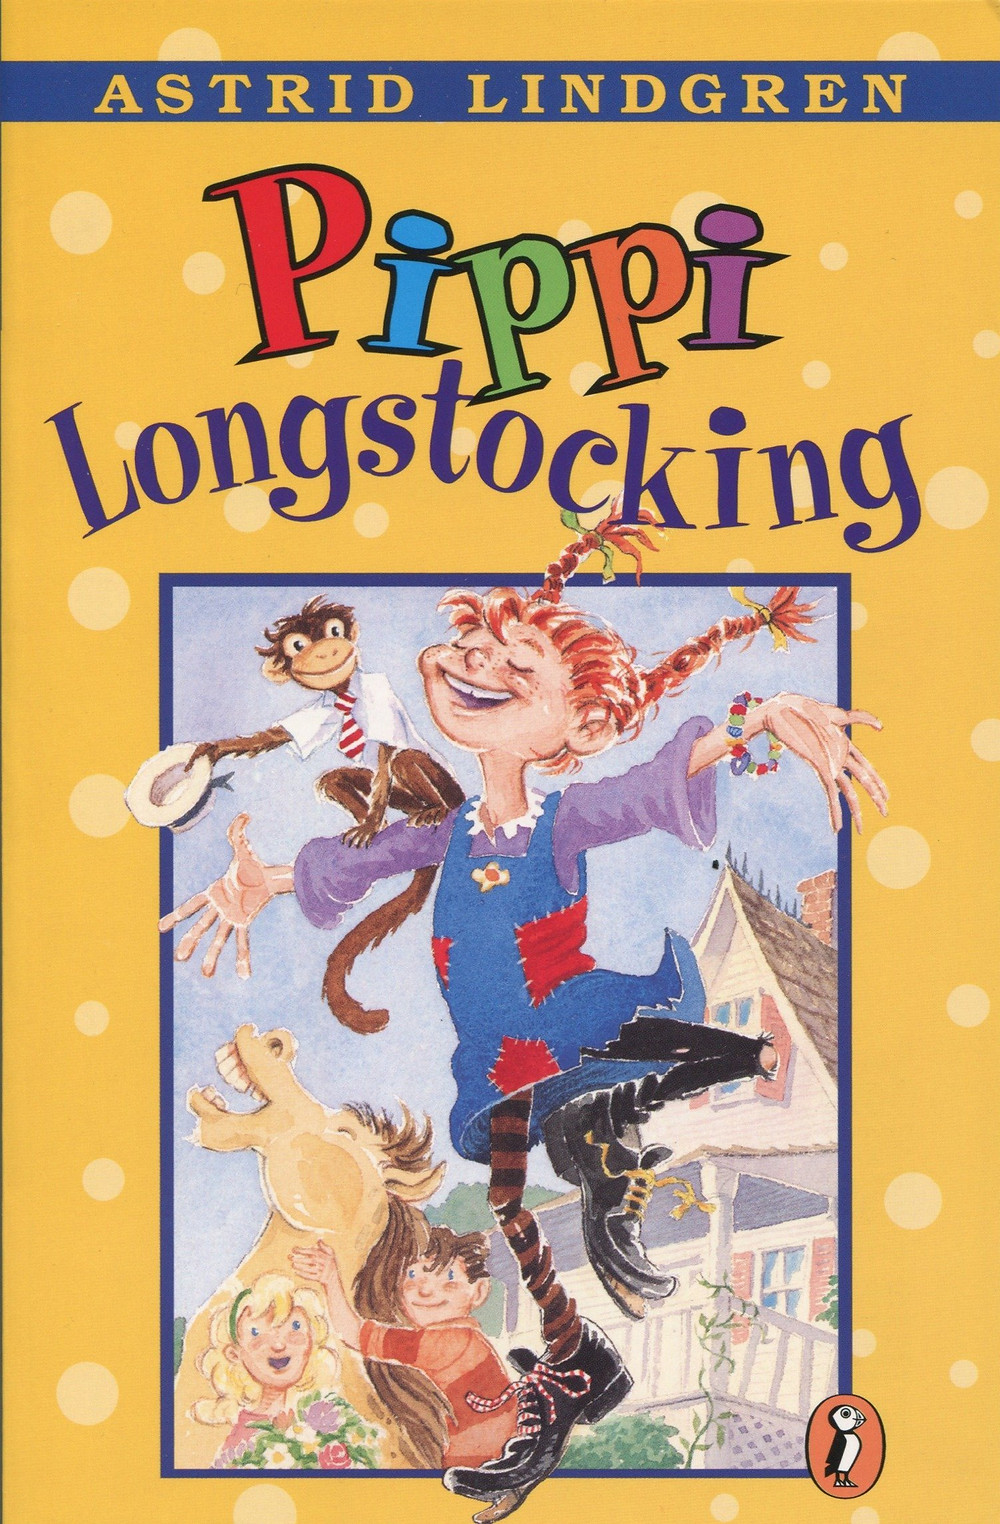 """Cover of the book """"Pippi Longstocking"""" with an illustration of a girl with red hair and braids pointed upwards, wearing a patched dress and long stockings. A monkey lies on her shoulder."""